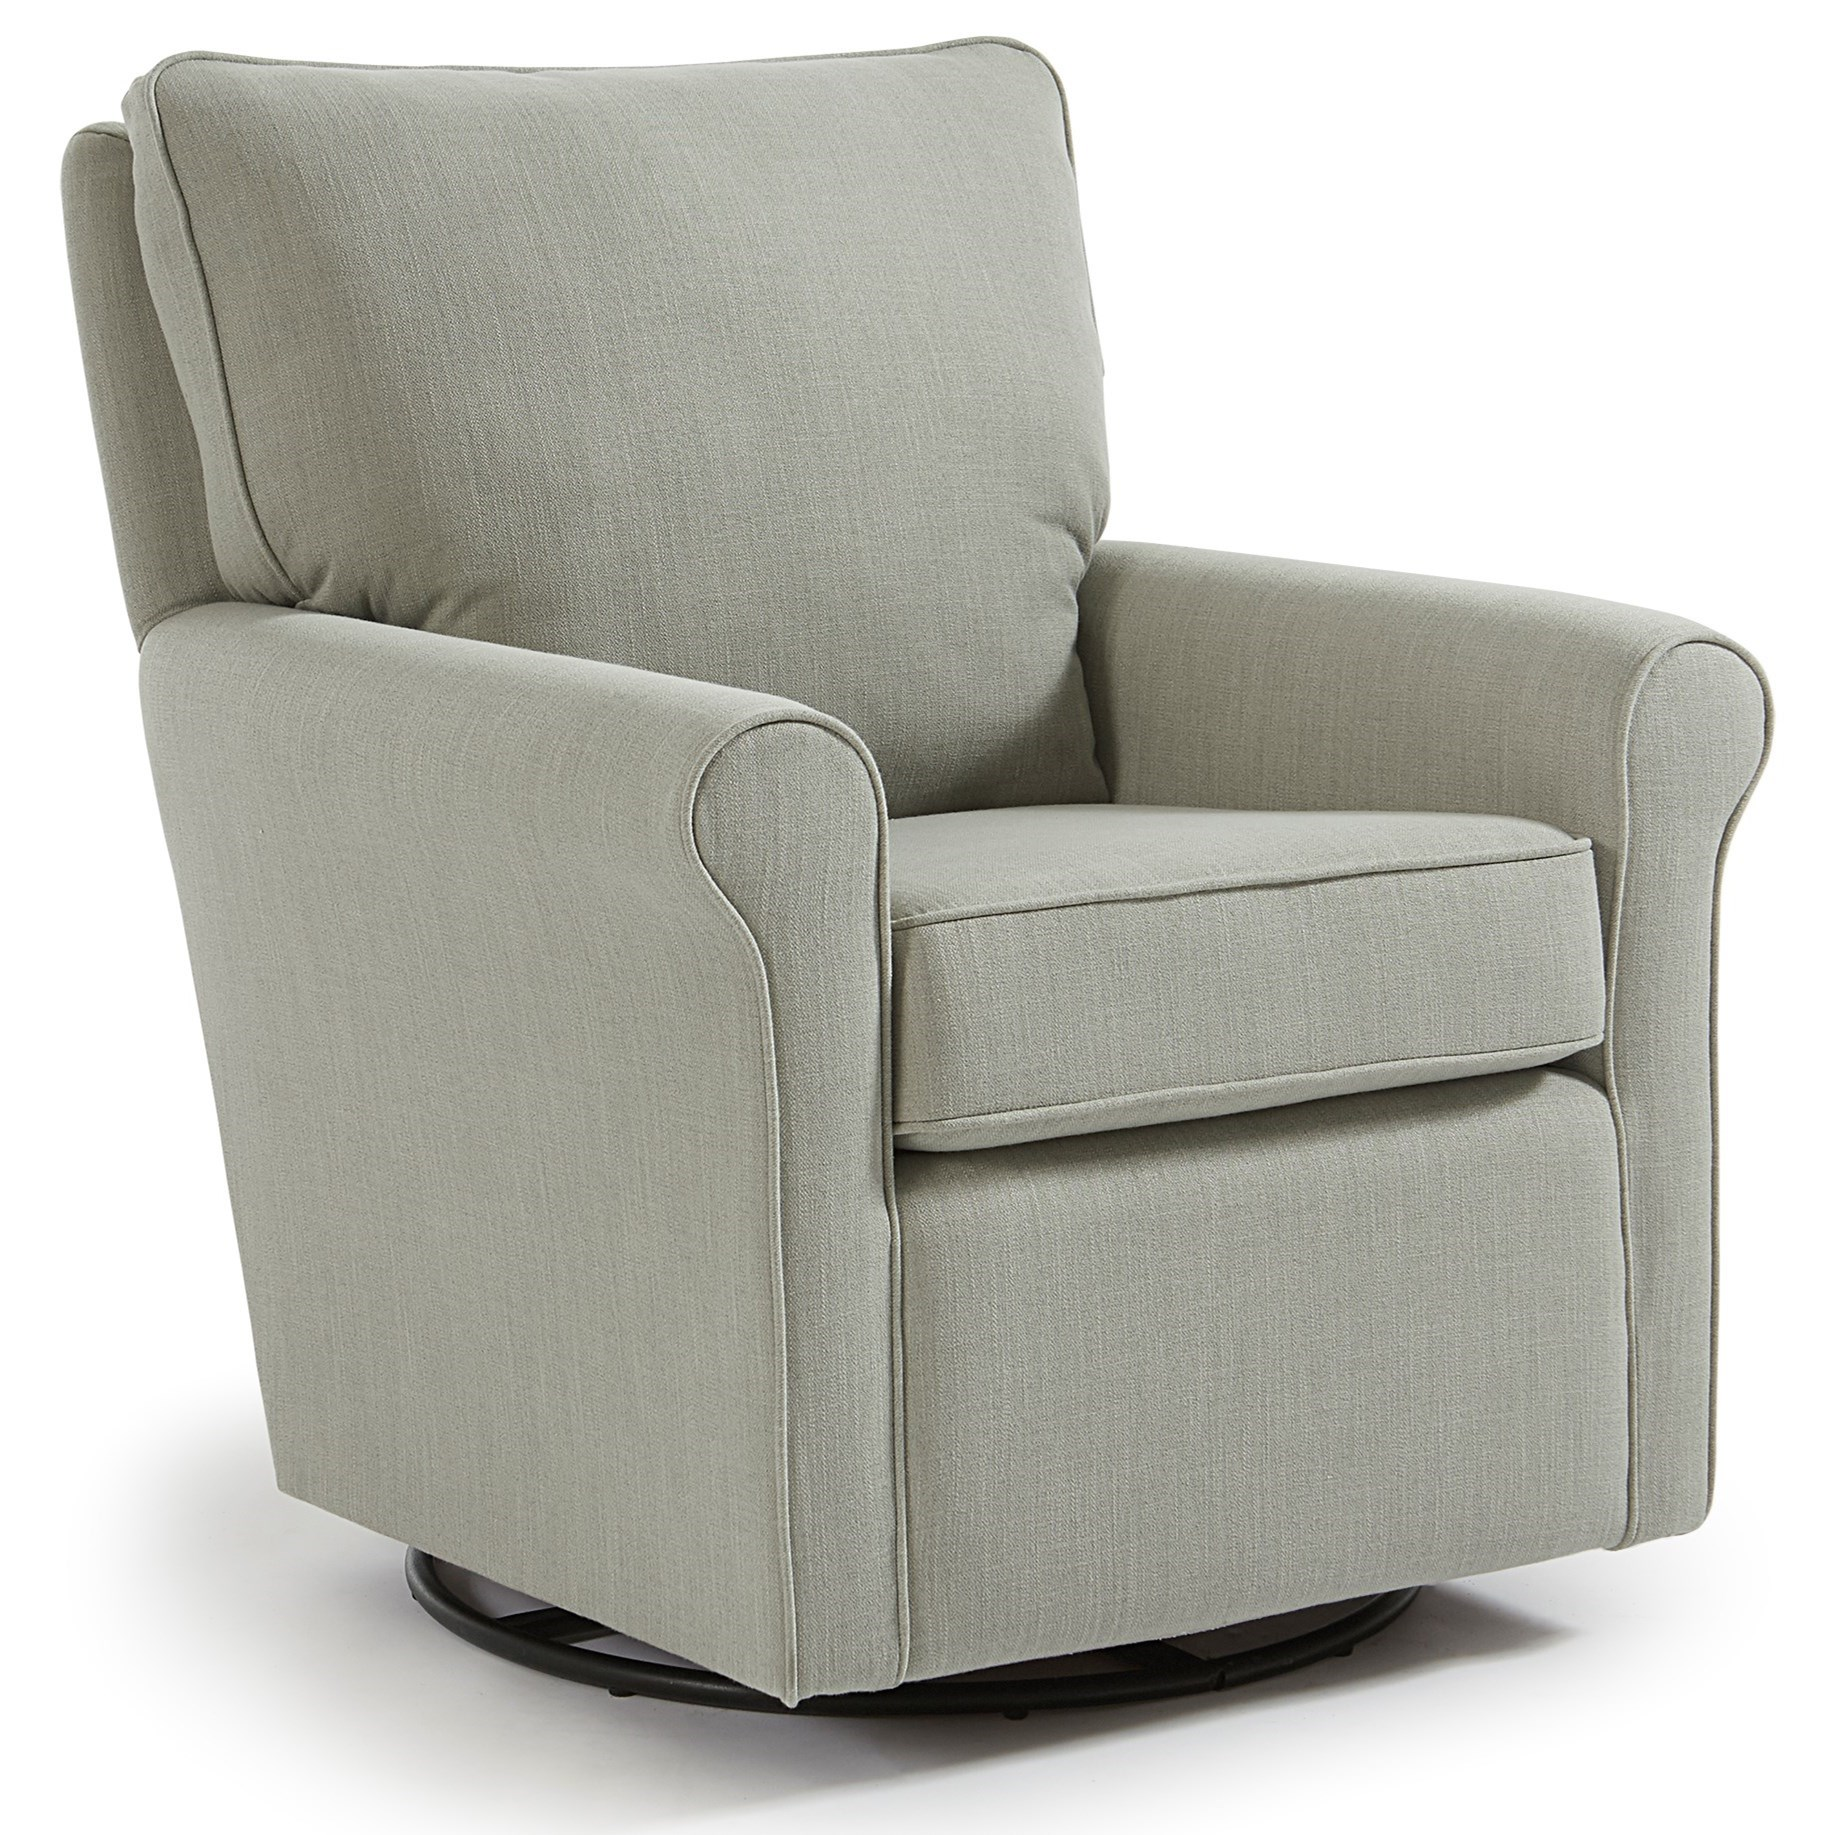 Surprising Canadel Swivel Chairs Smith Brothers Accent Chairs And Theyellowbook Wood Chair Design Ideas Theyellowbookinfo